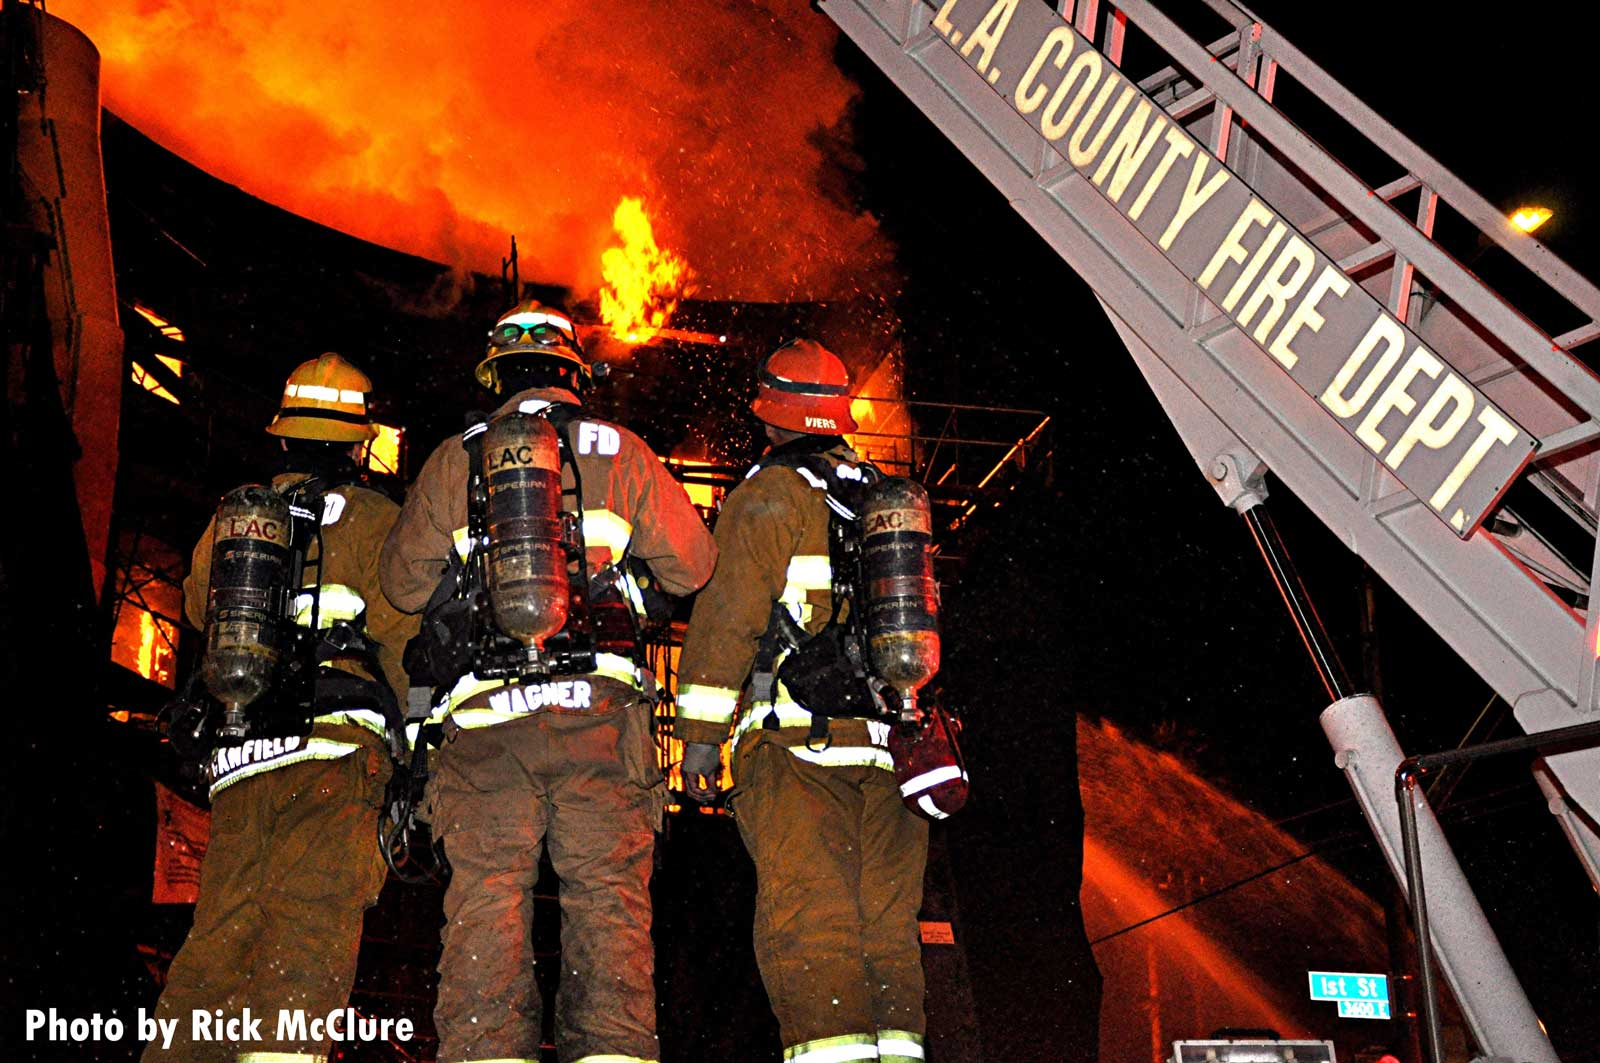 Firefighters observe the flames